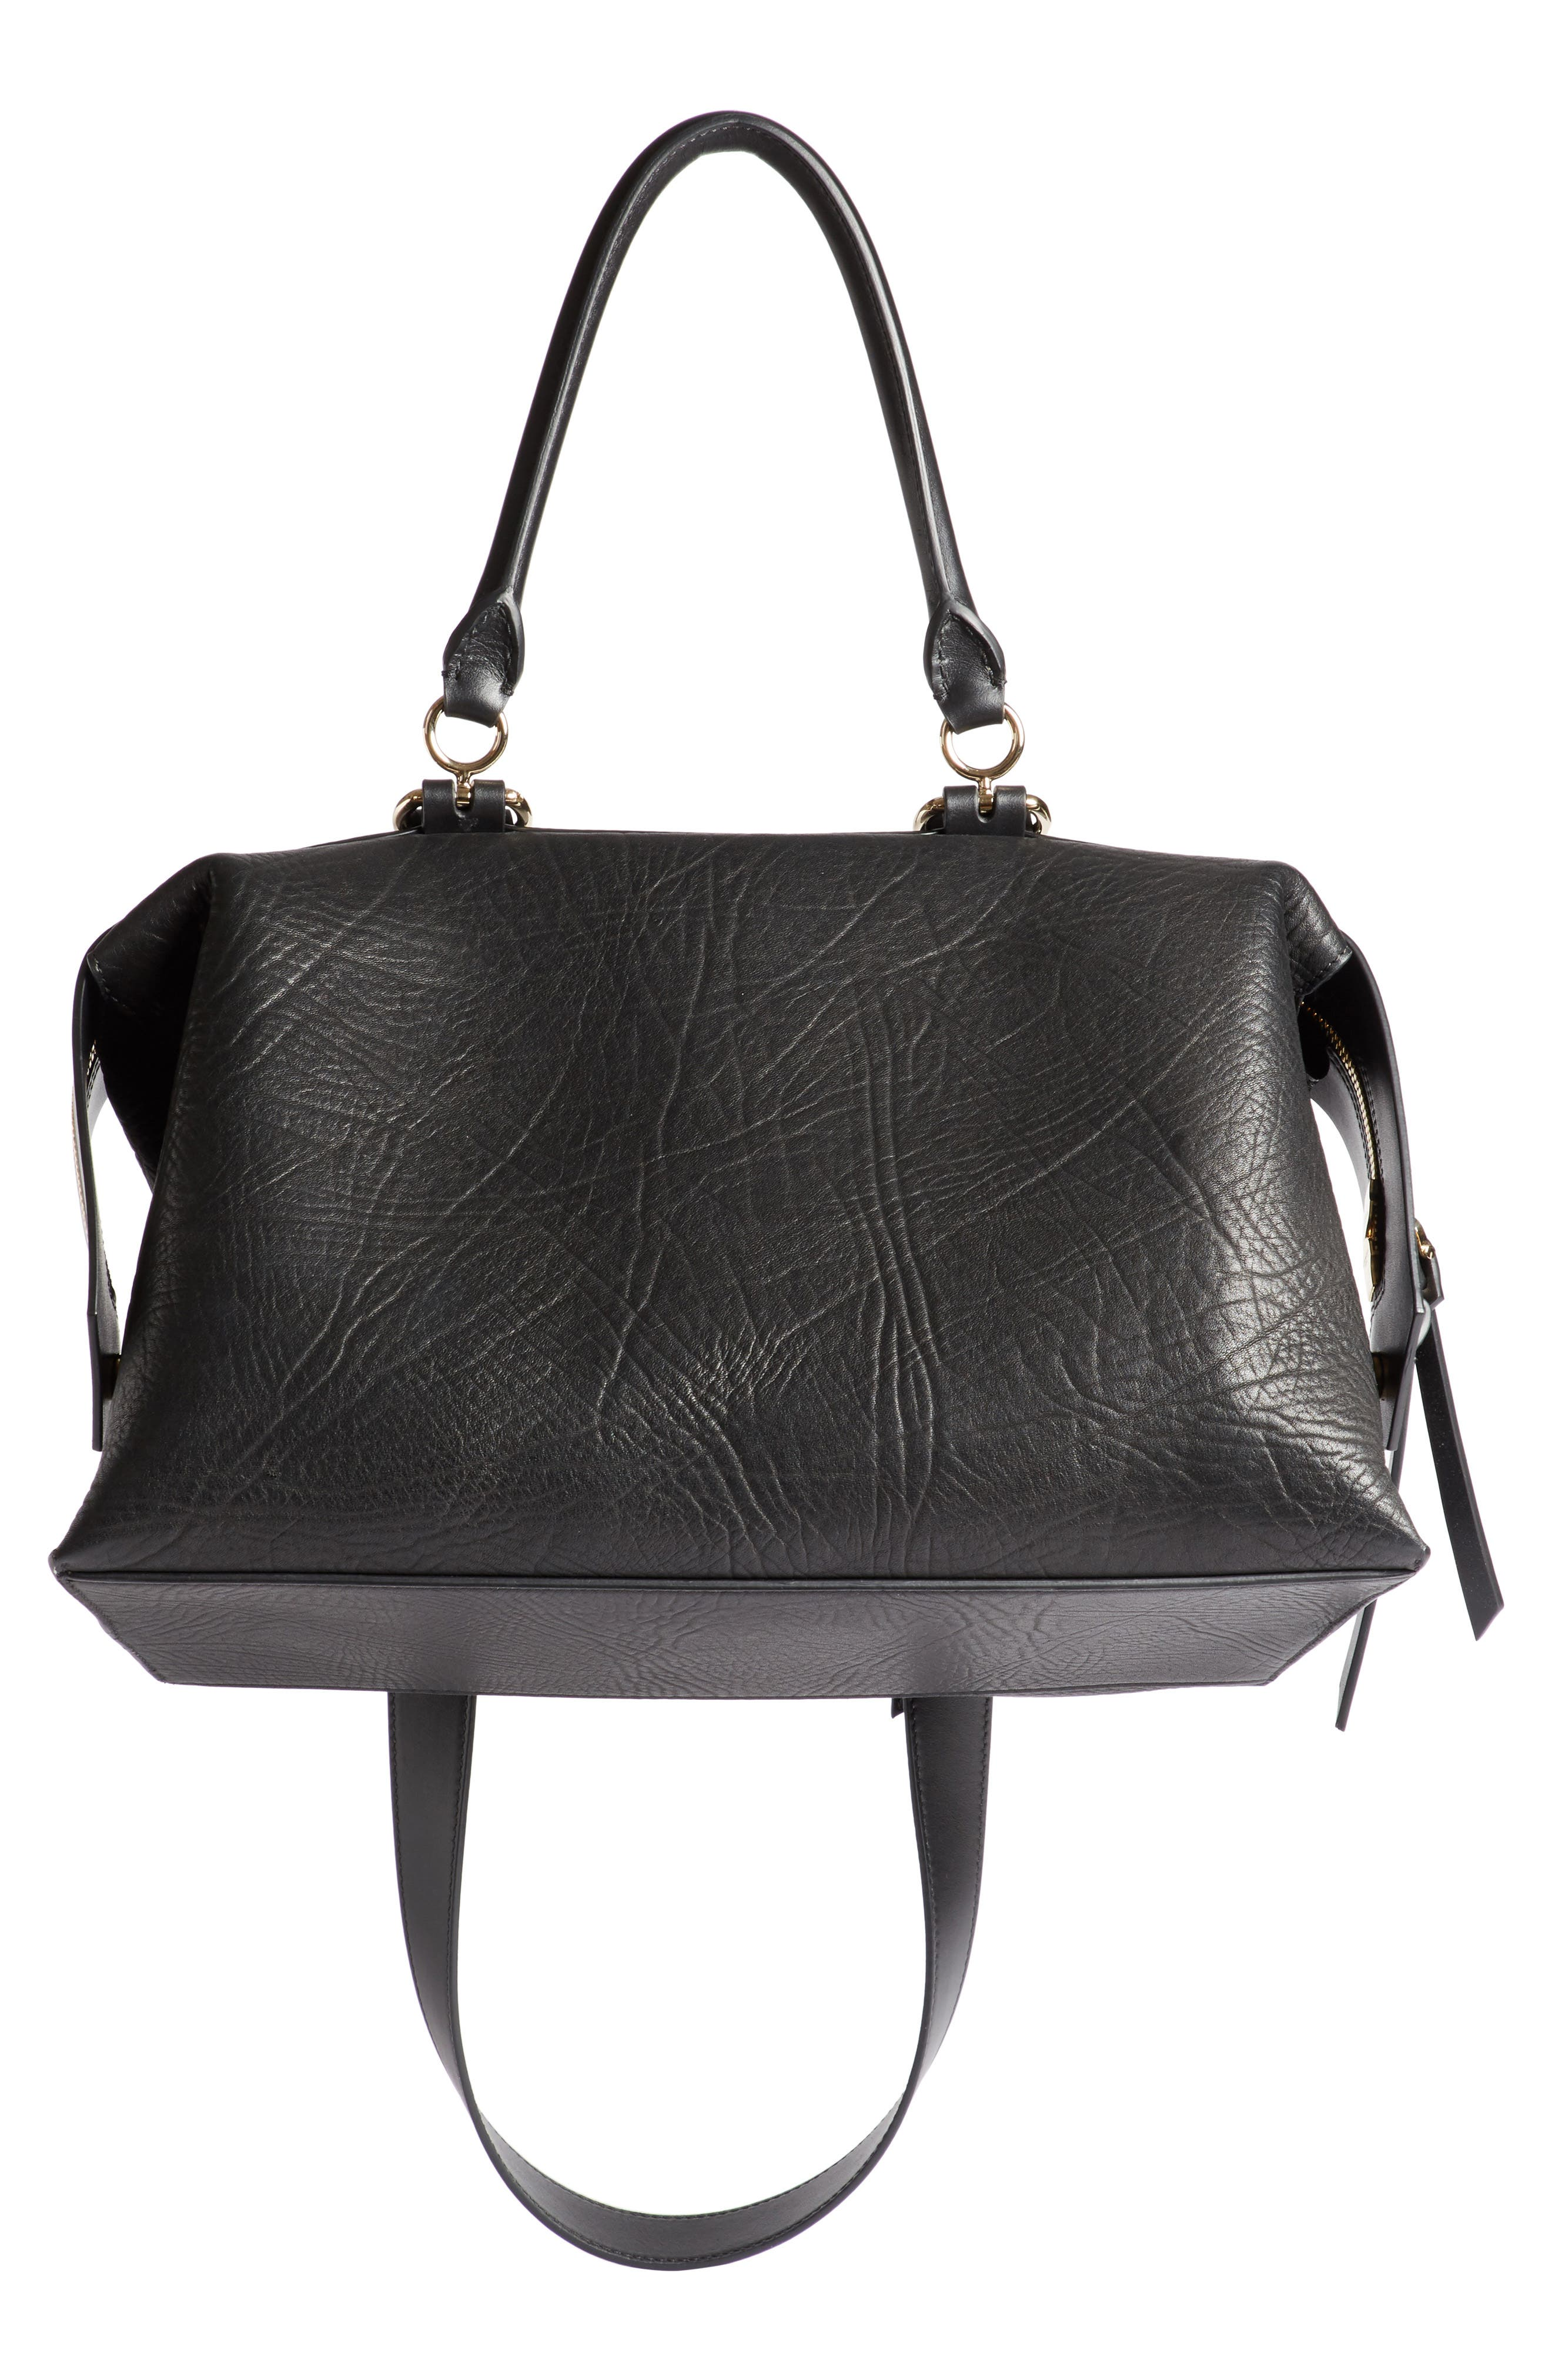 GIVENCHY,                             Medium Sway Leather Satchel,                             Alternate thumbnail 2, color,                             001